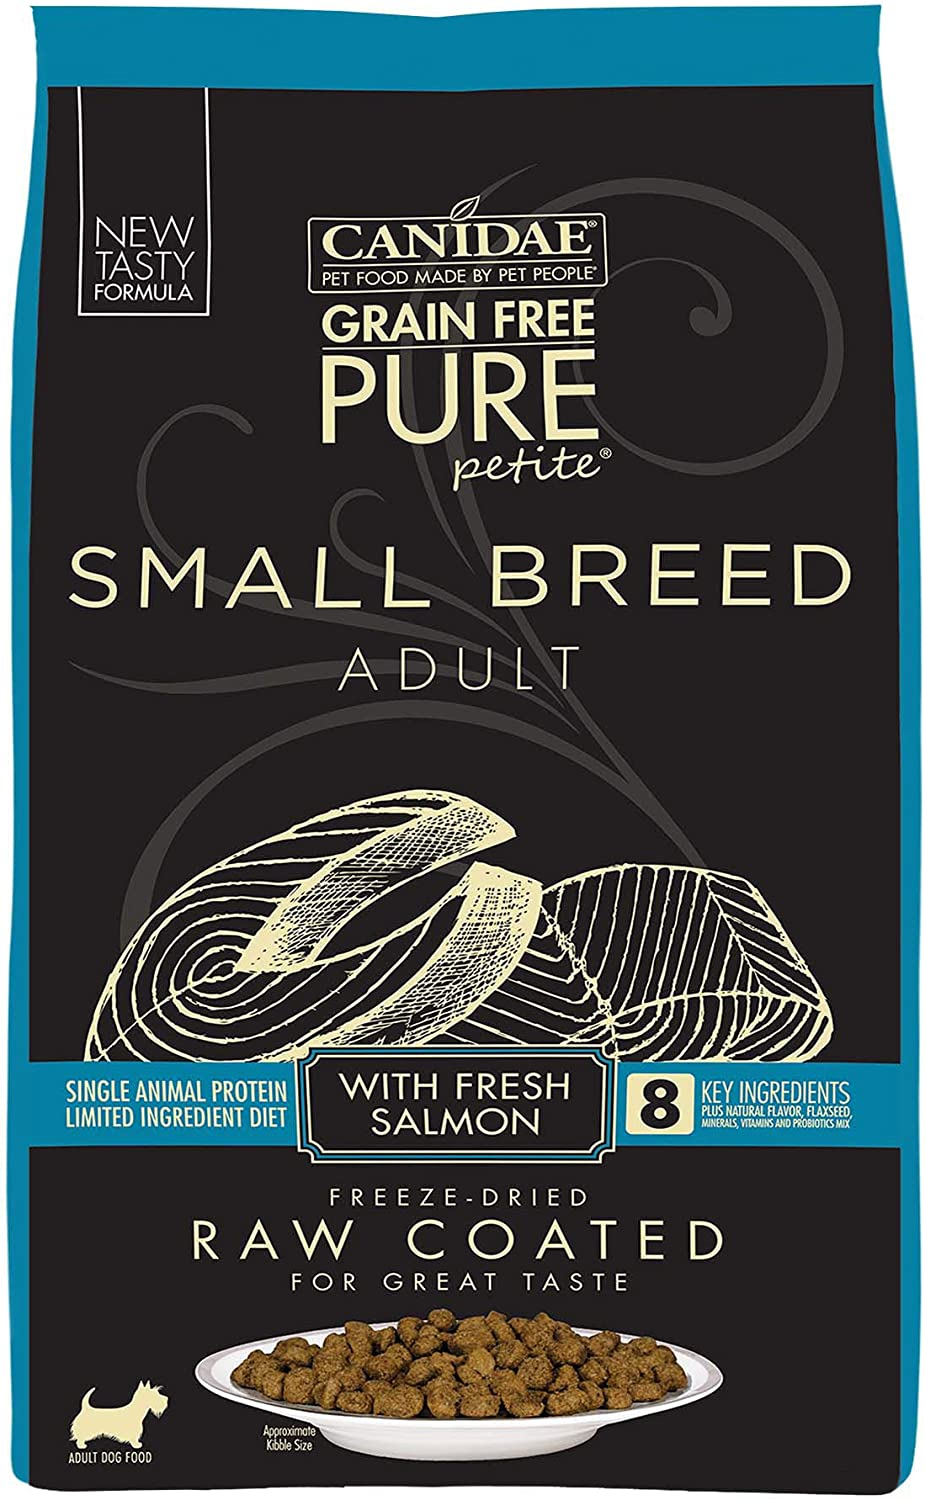 CANIDAE Grain Free Pure Petite Small Breed Raw Coated Dry Dog Food